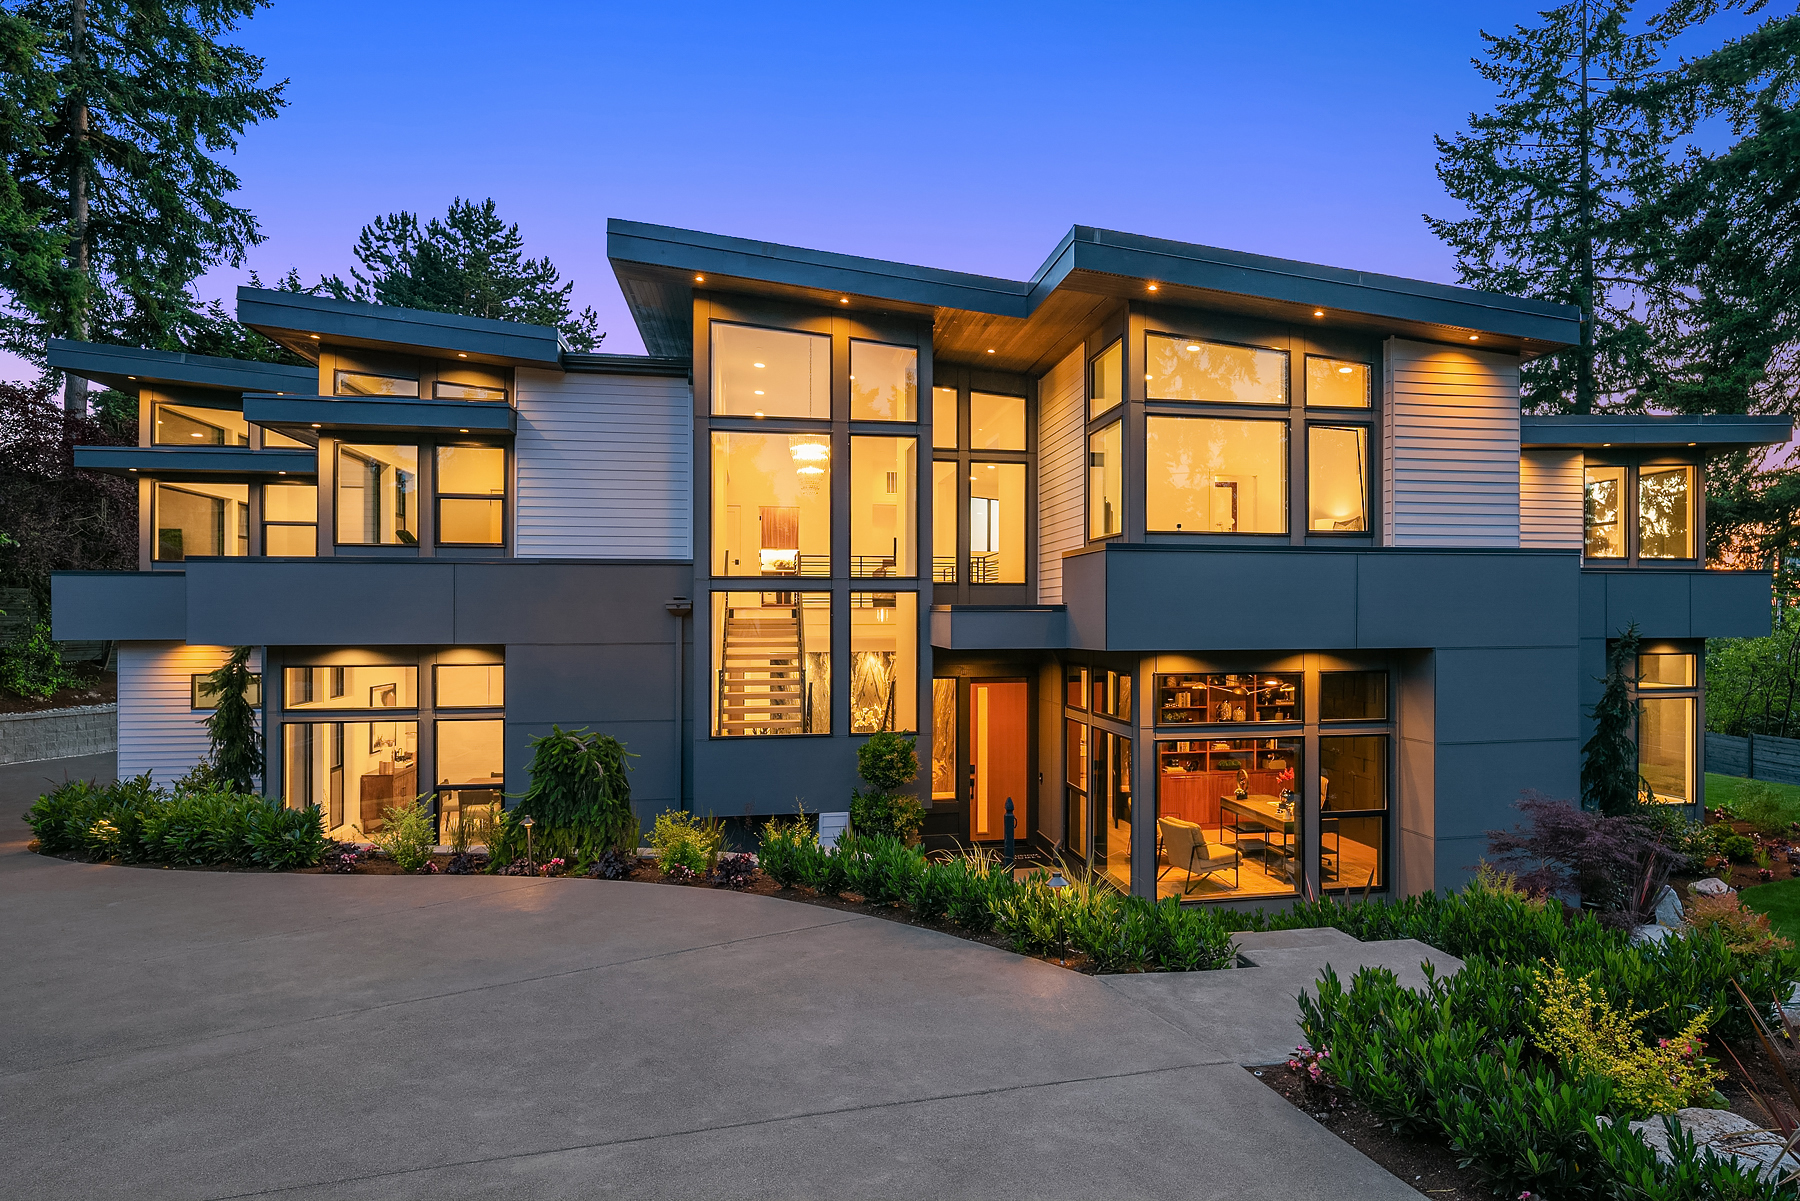 View our new luxury home construction on 2659 90th Ave NE in Bellevue, WA from MN Custom Homes